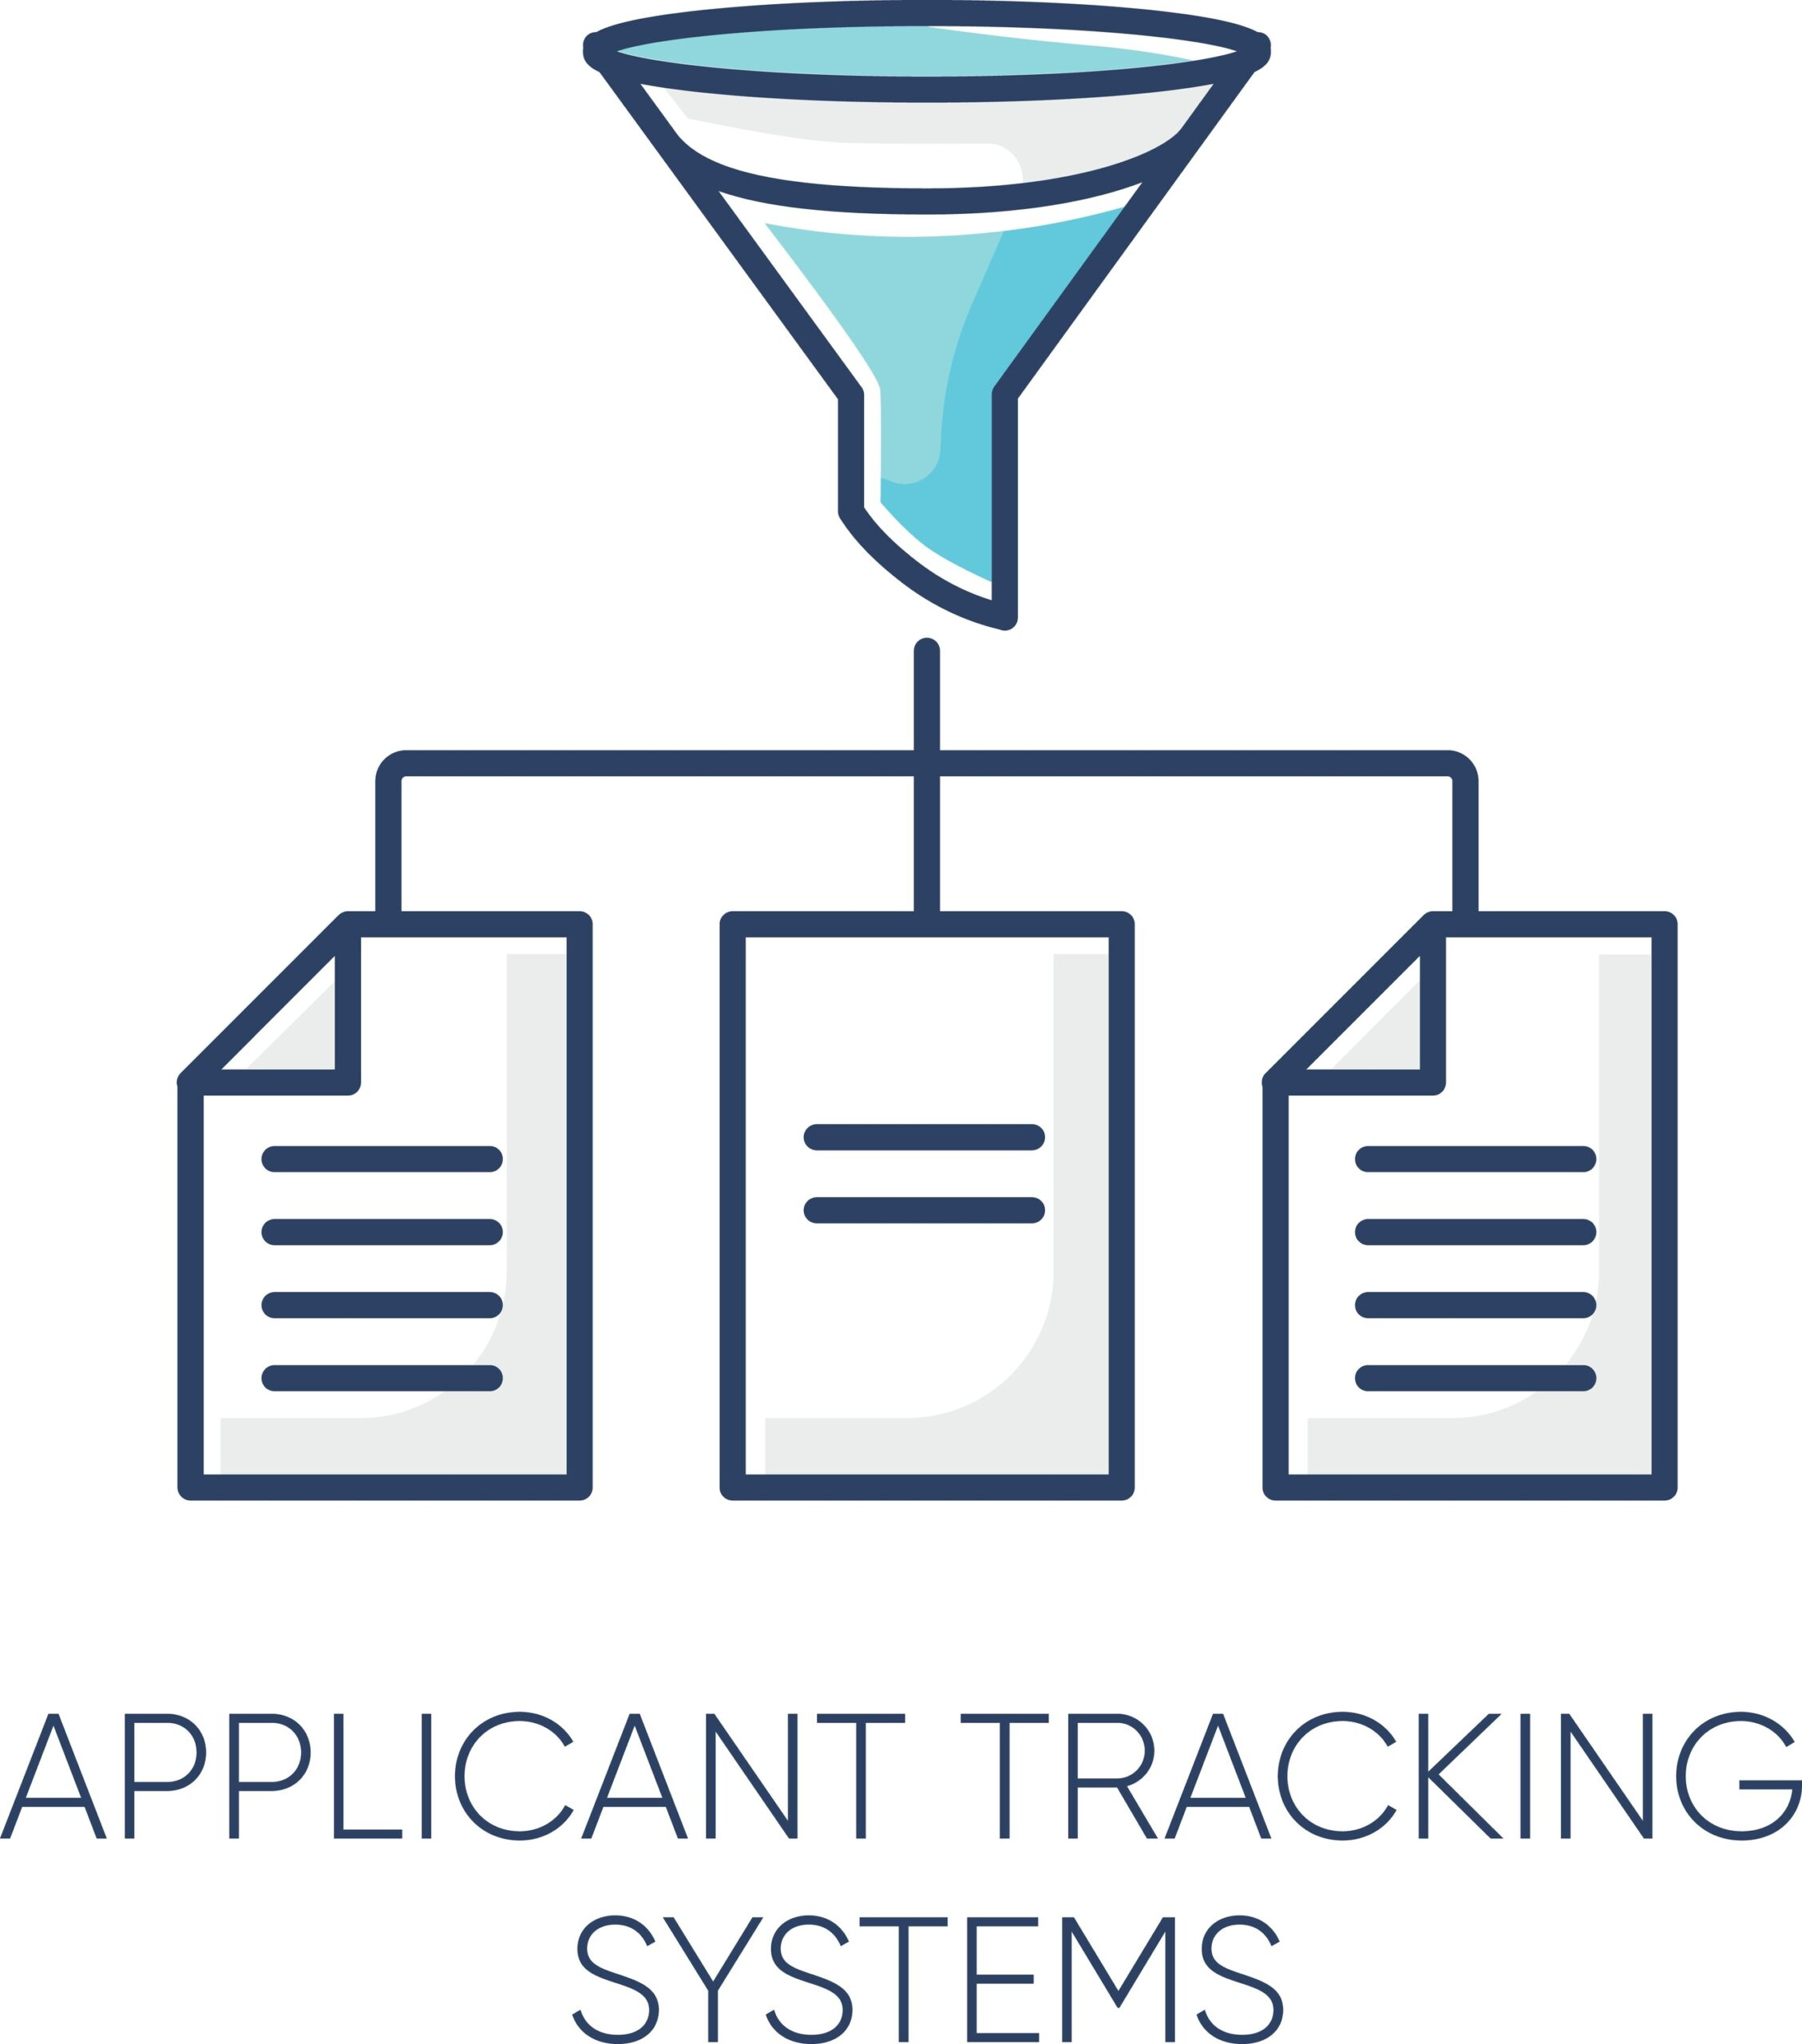 Check out our tips to beat applicant tracking systems!